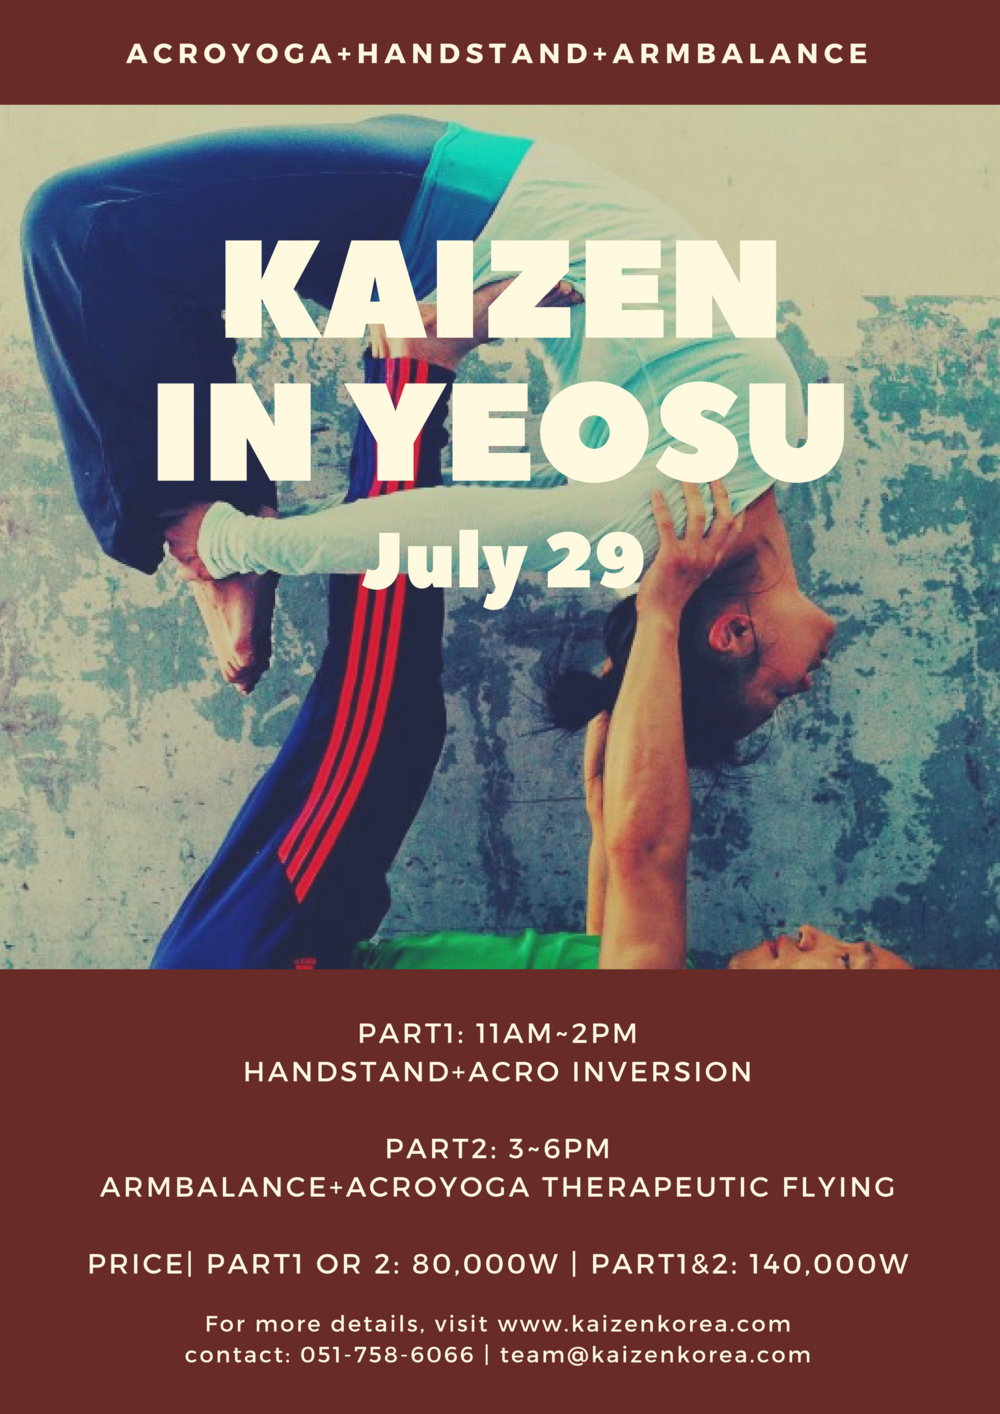 for more info & enrollment contact : team@kaizenkorea.com | 051-758-6066